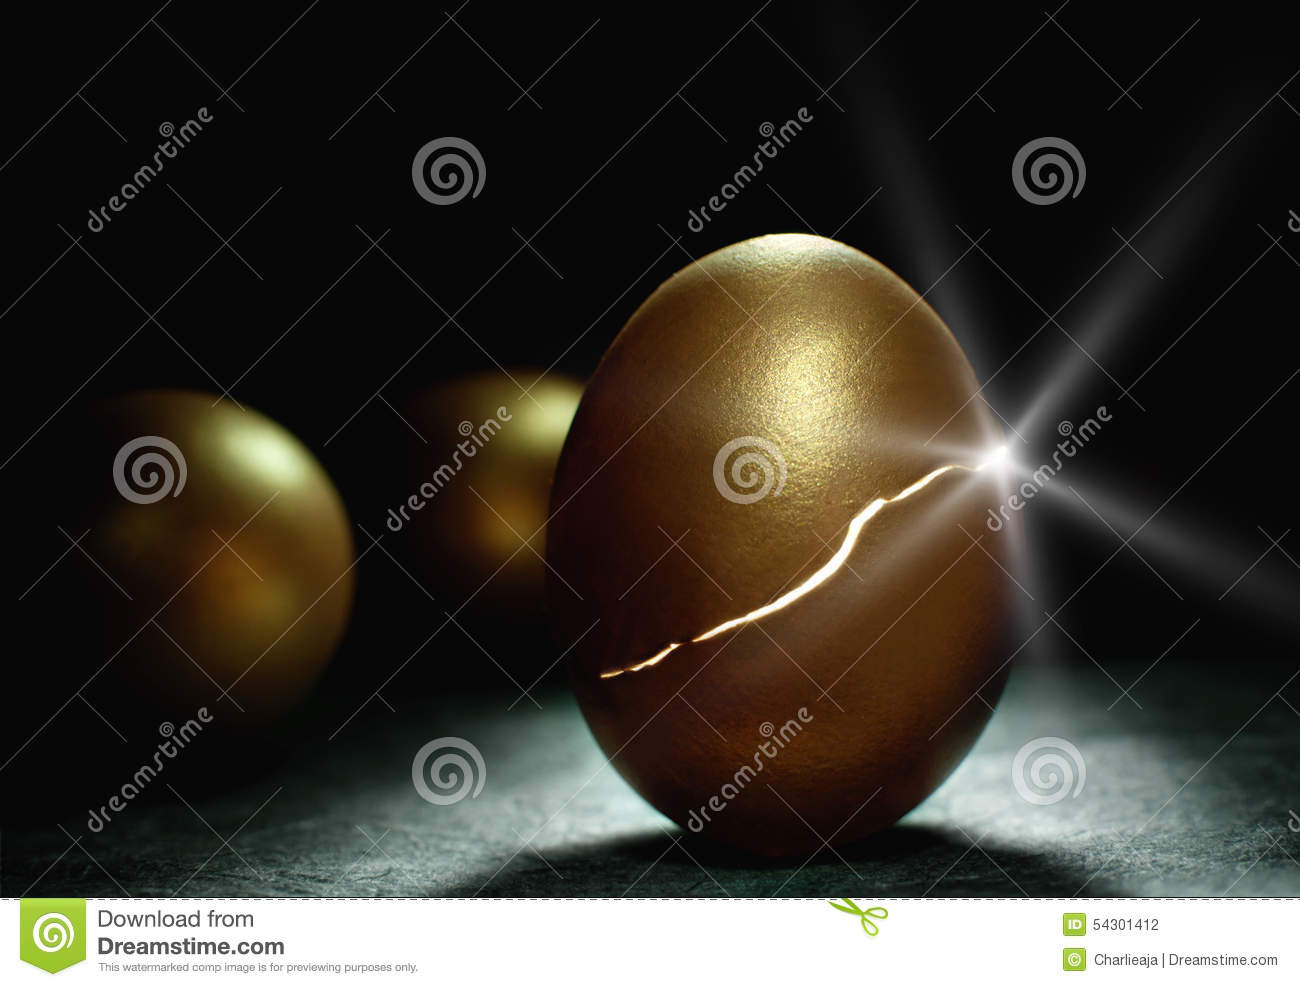 Gold nest egg coming to life